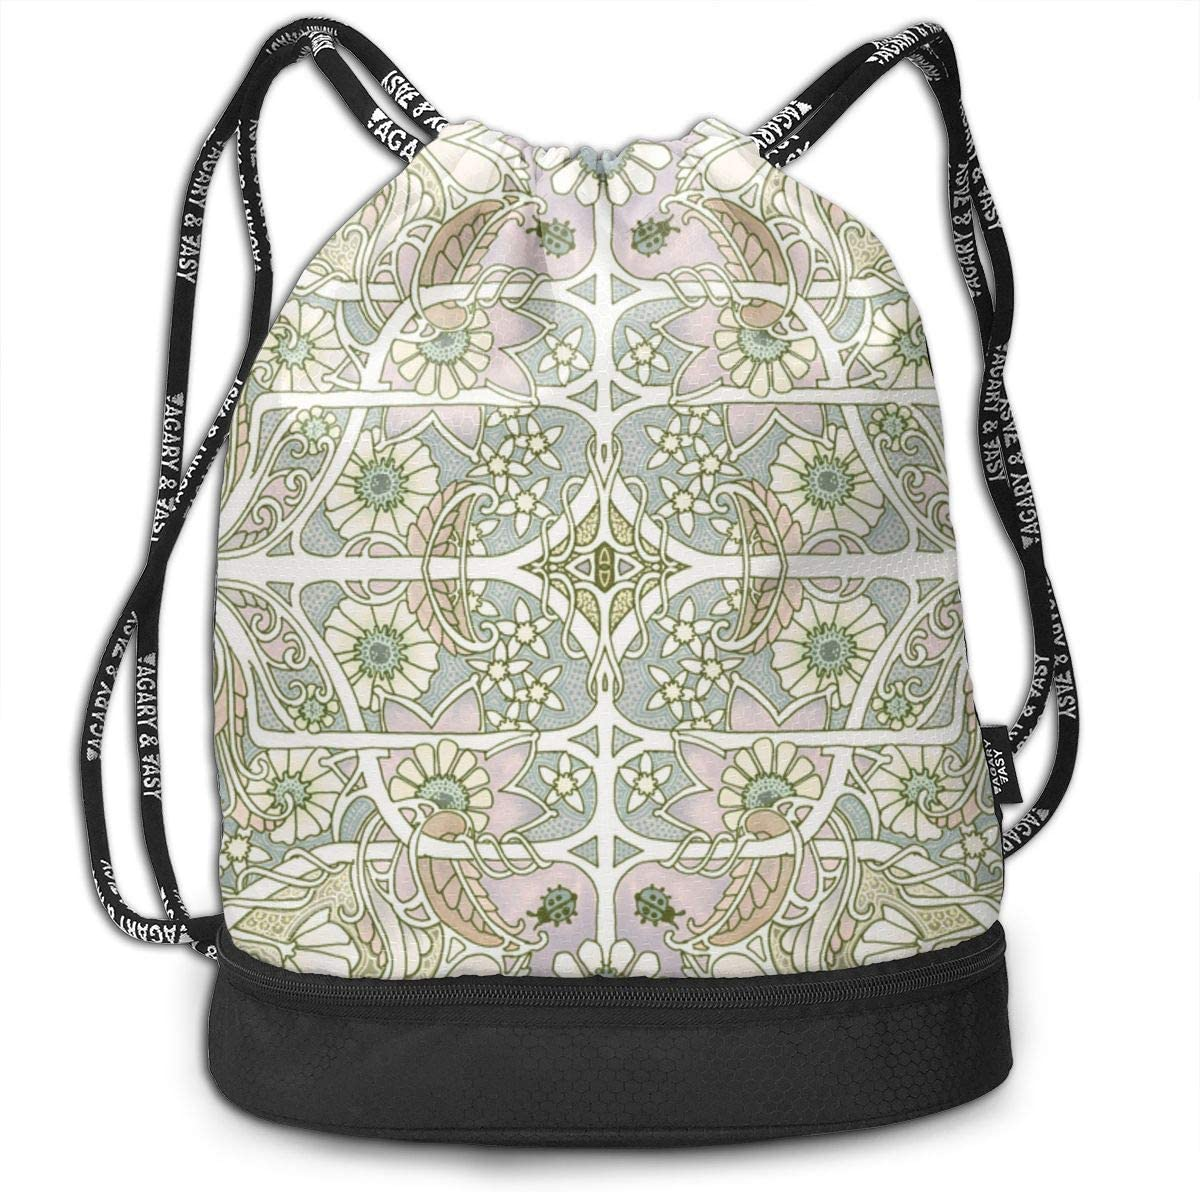 Big Garden Whispers Drawstring Backpack Sports Athletic Gym Cinch Sack String Storage Bags for Hiking Travel Beach